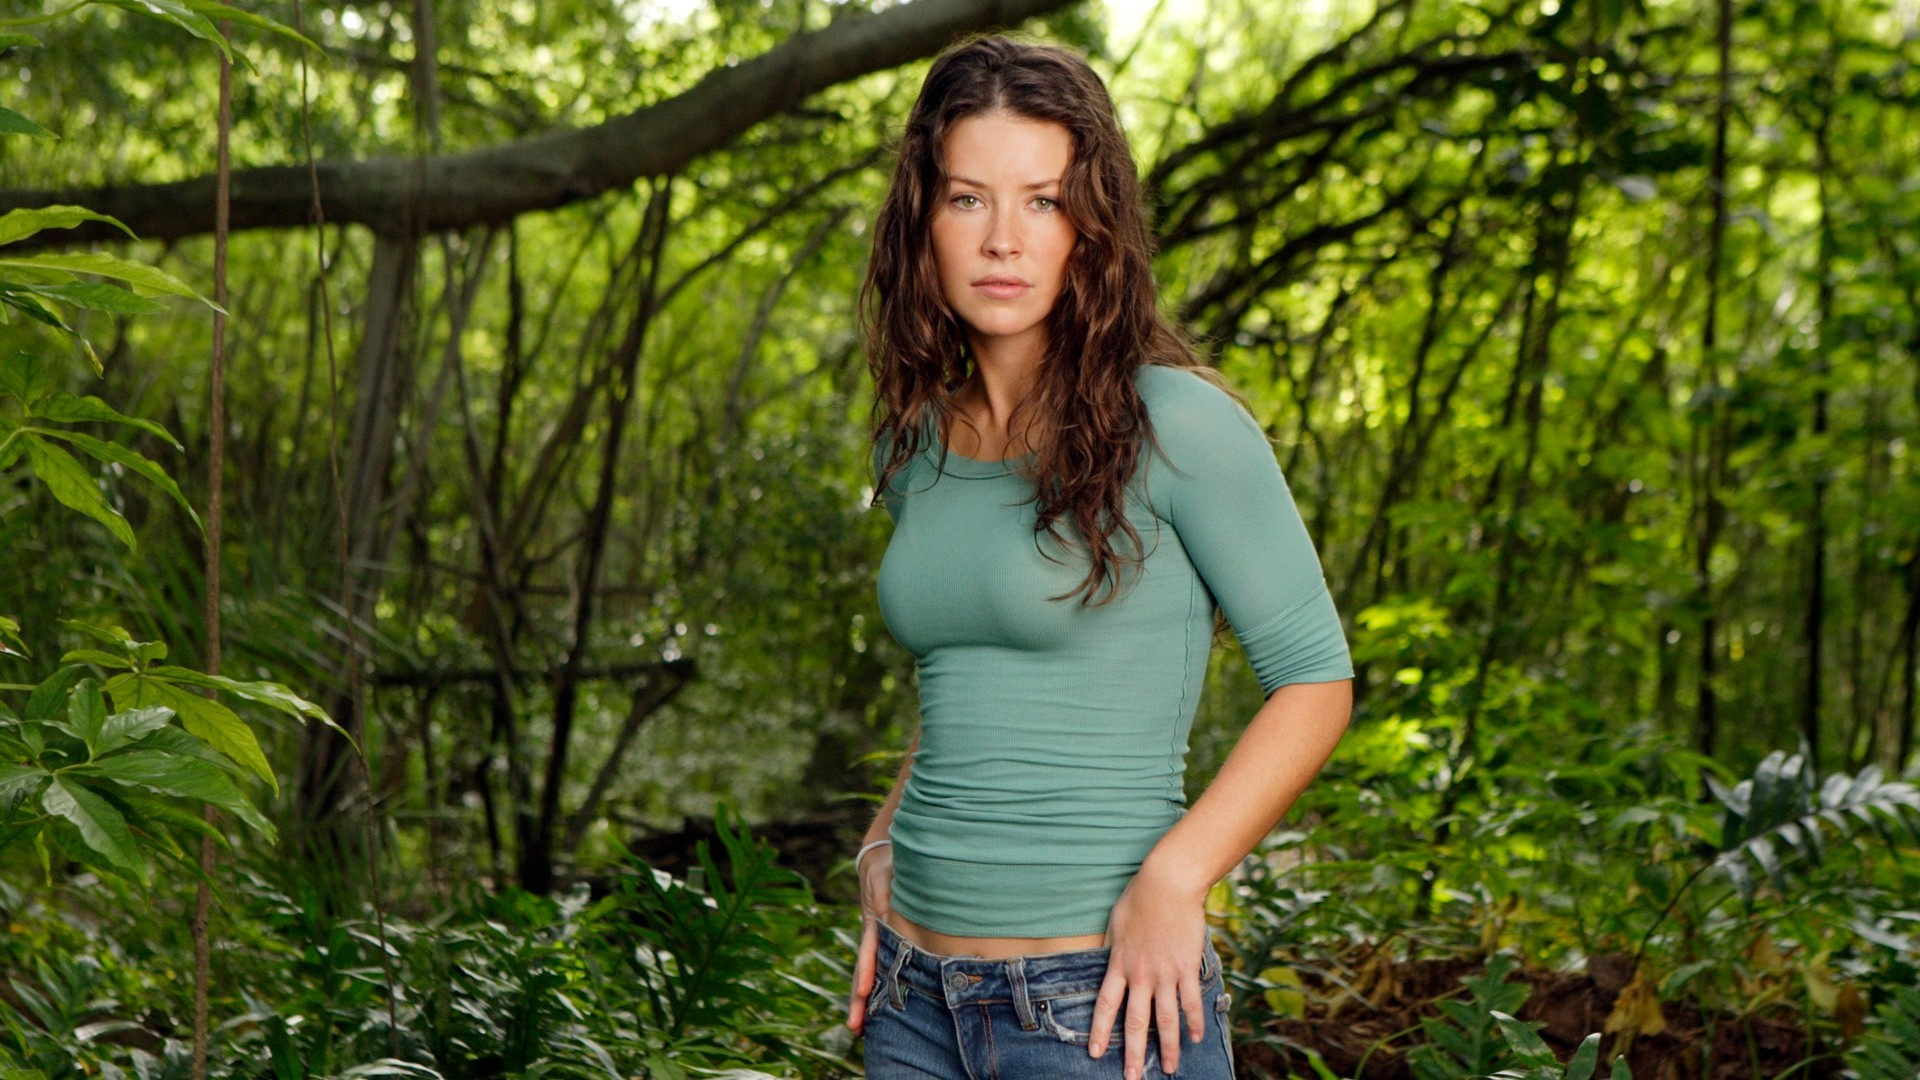 Related wallpapers from Evangeline Lilly Wallpaper 1920x1080 1920x1080